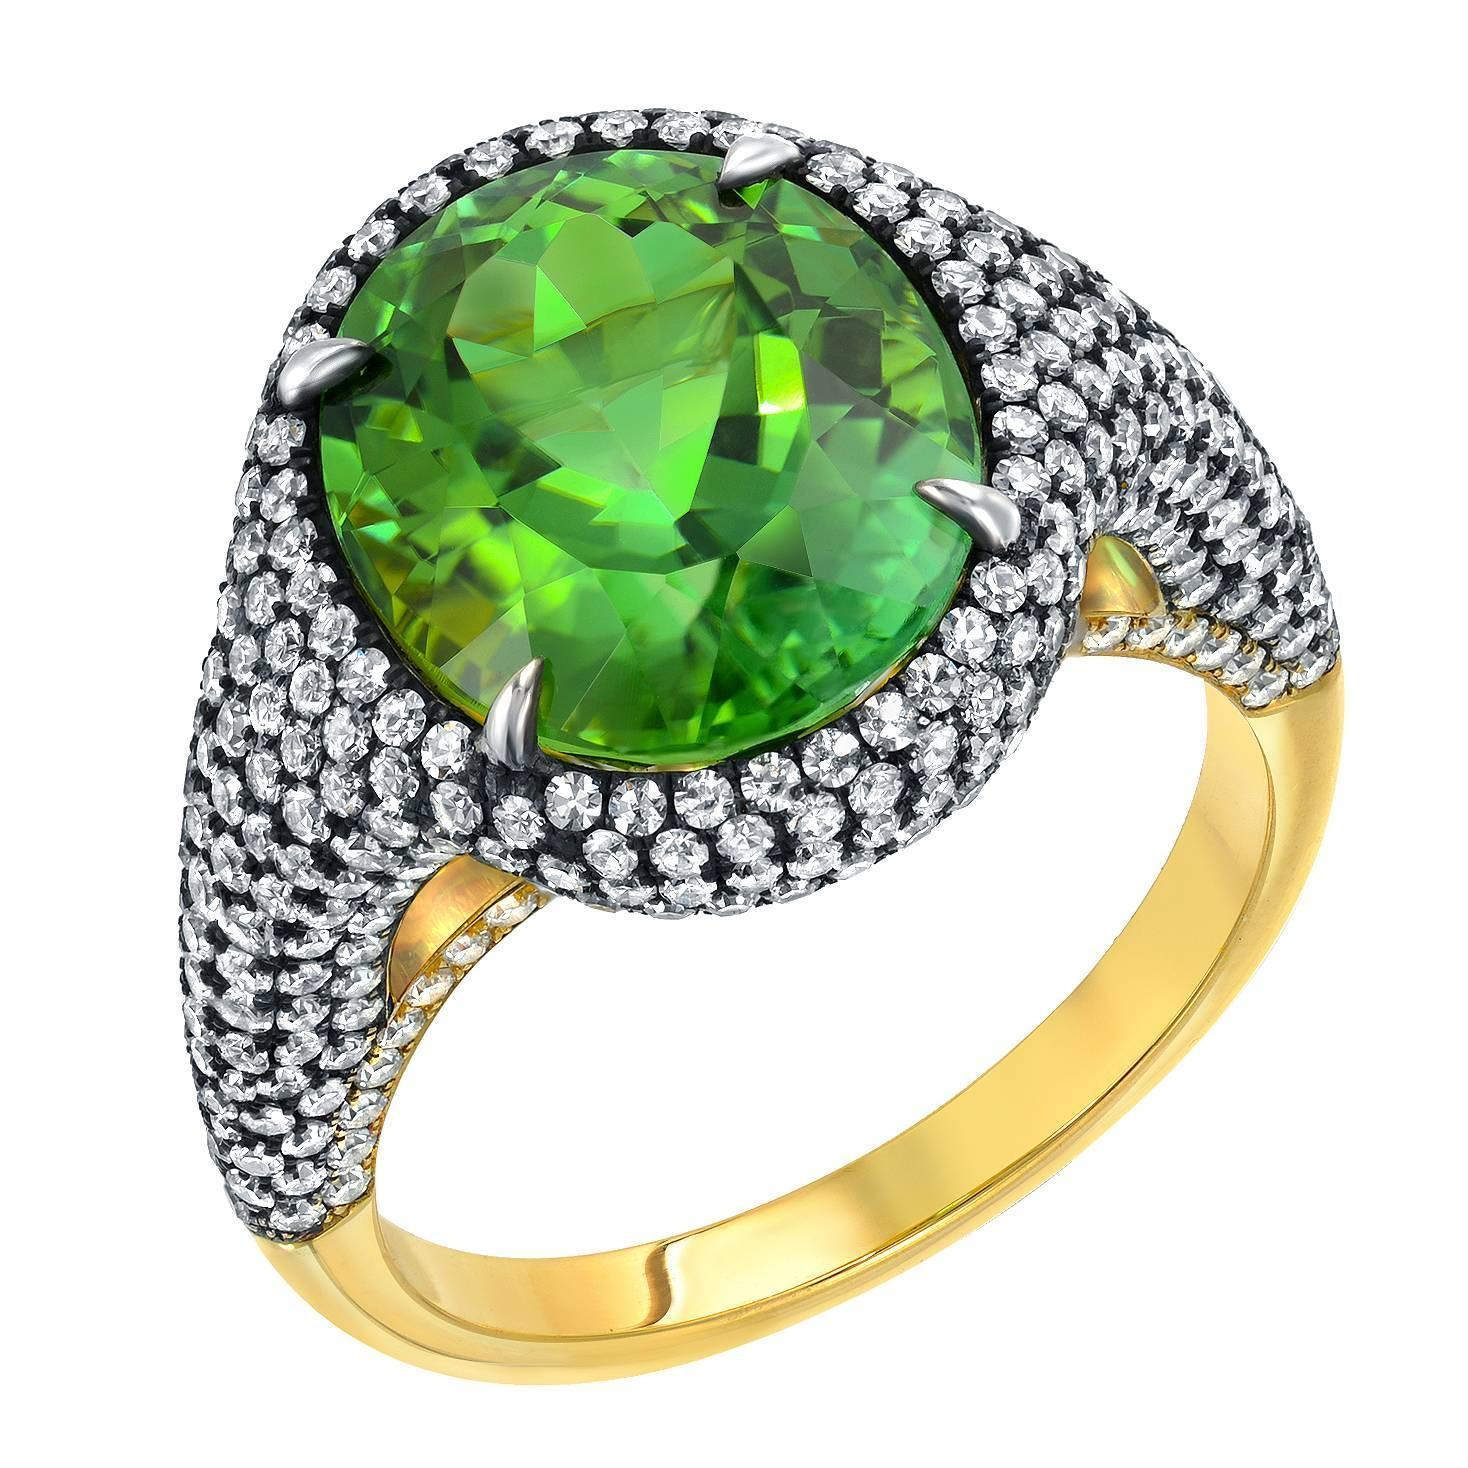 tw engagement green halo yellow gold ring in diamond with tourmaline rings